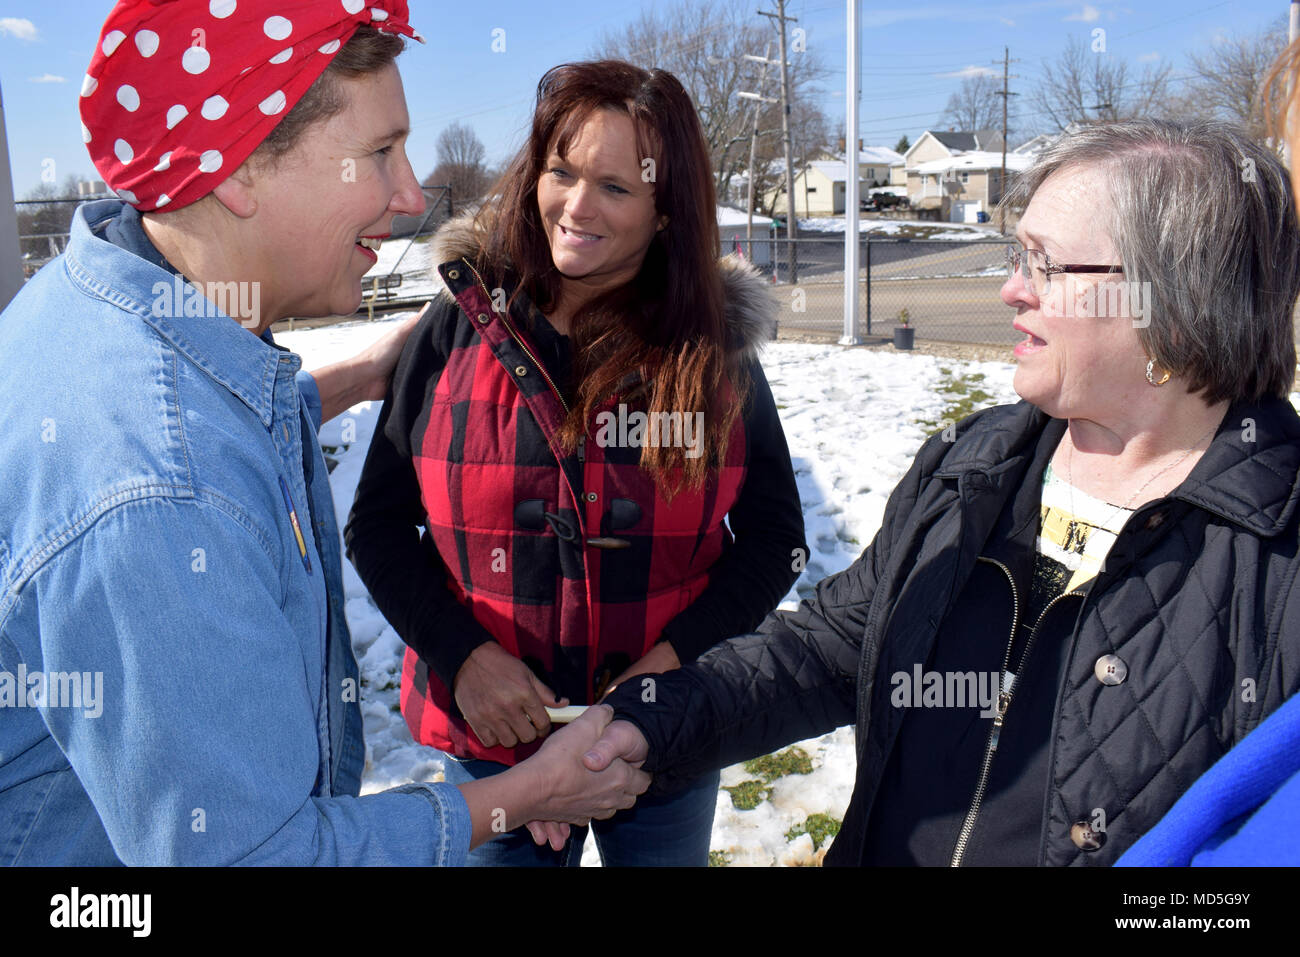 """Betty Wagner (center) and Brenda Corey (right) meet Angie Timan (left), event coordinator for the Rosie the Riveter Memorial Rose Garden Dedication ceremony in Bedford, Ind., March 21. Wagner and Corey are current Crane Army Ammunition Activity employees and carry on the legacy of the """"Rosies"""" who worked at the base during World War II and the post-war era. - Stock Image"""